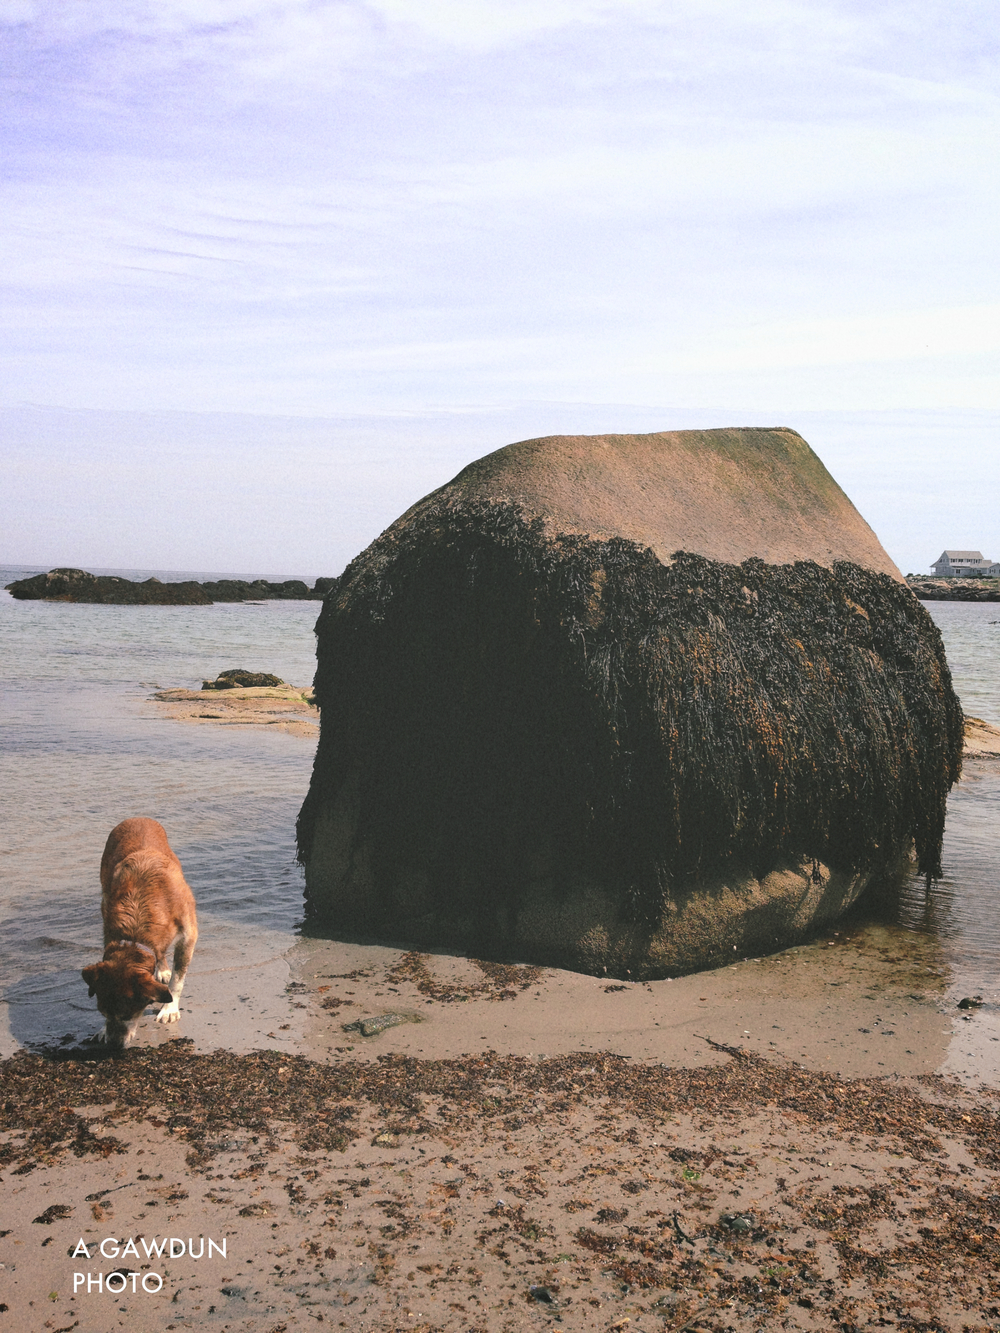 I was told that I would notice the tide changes significantly on the East Coast.  This rock is proof!  At low tide it looks like this but at high tide it goes underwater completely.  The dog gives perfect height difference of the tides...